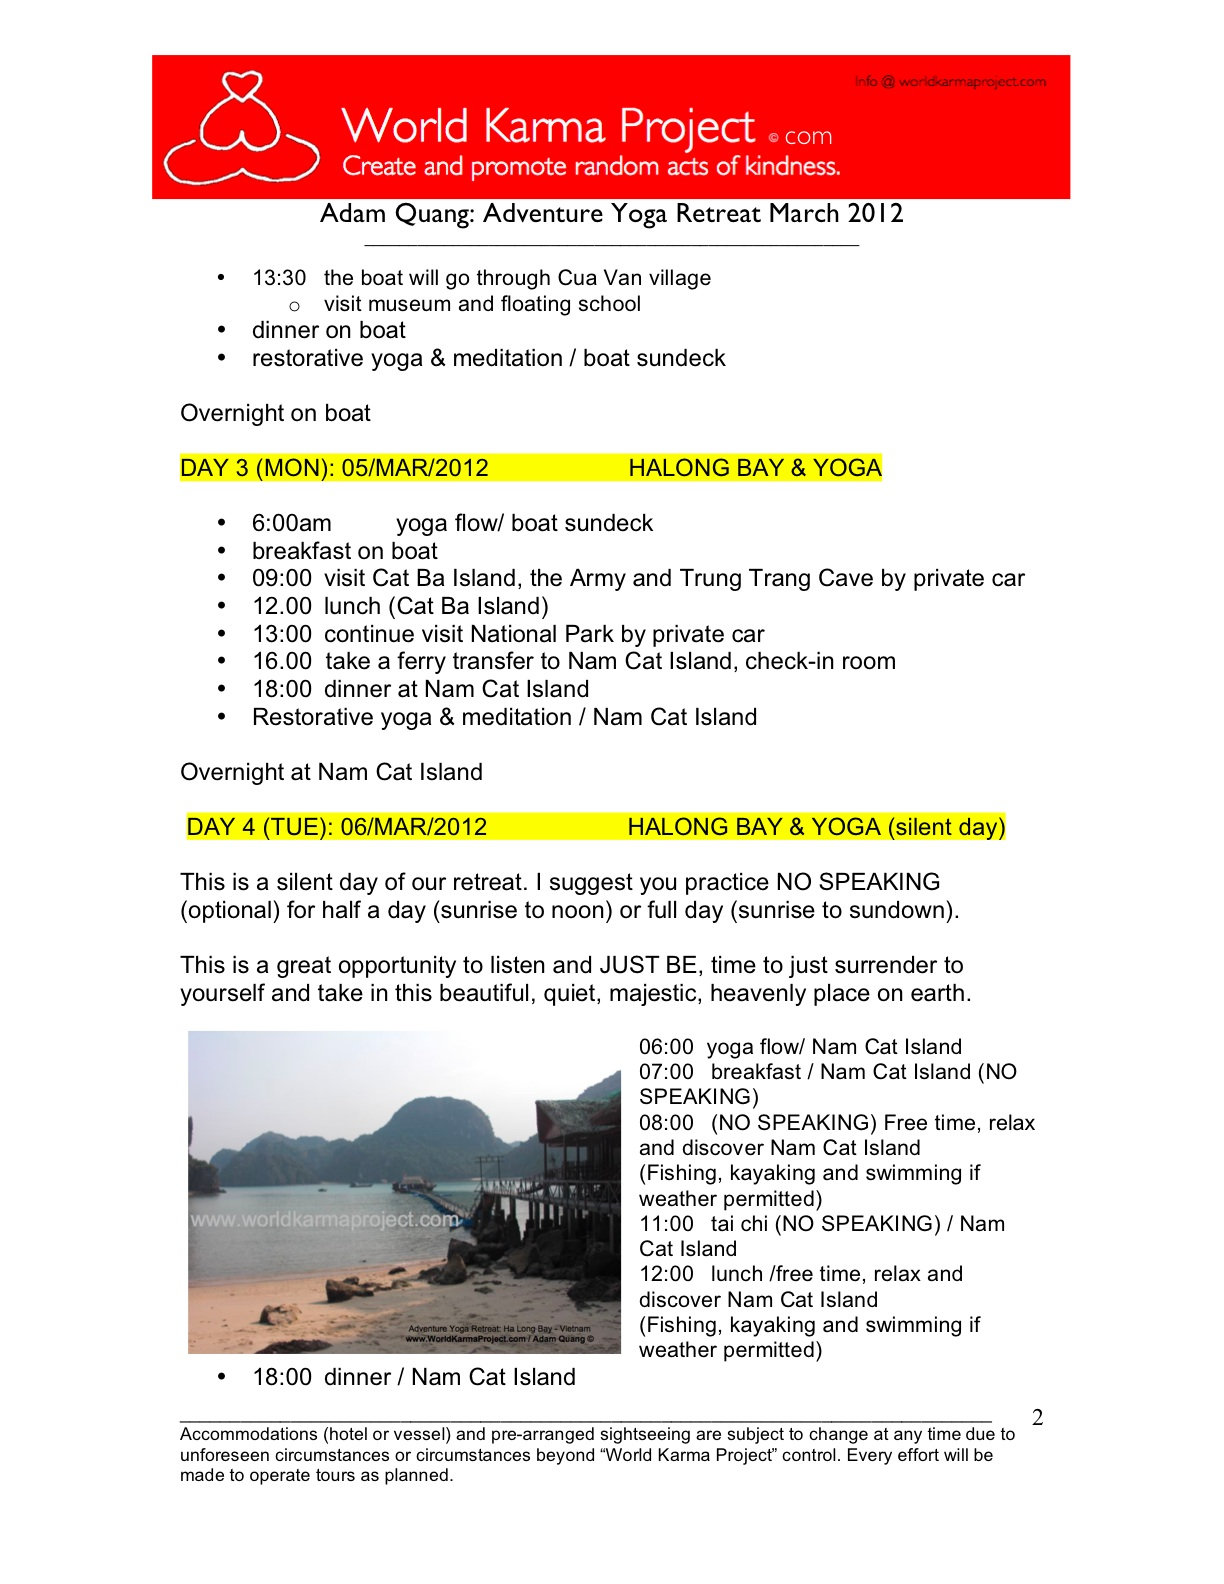 2-Adventure yoga retreat - Halong bay Tour itinerary -Mar_3-17_2012 -Edit JC